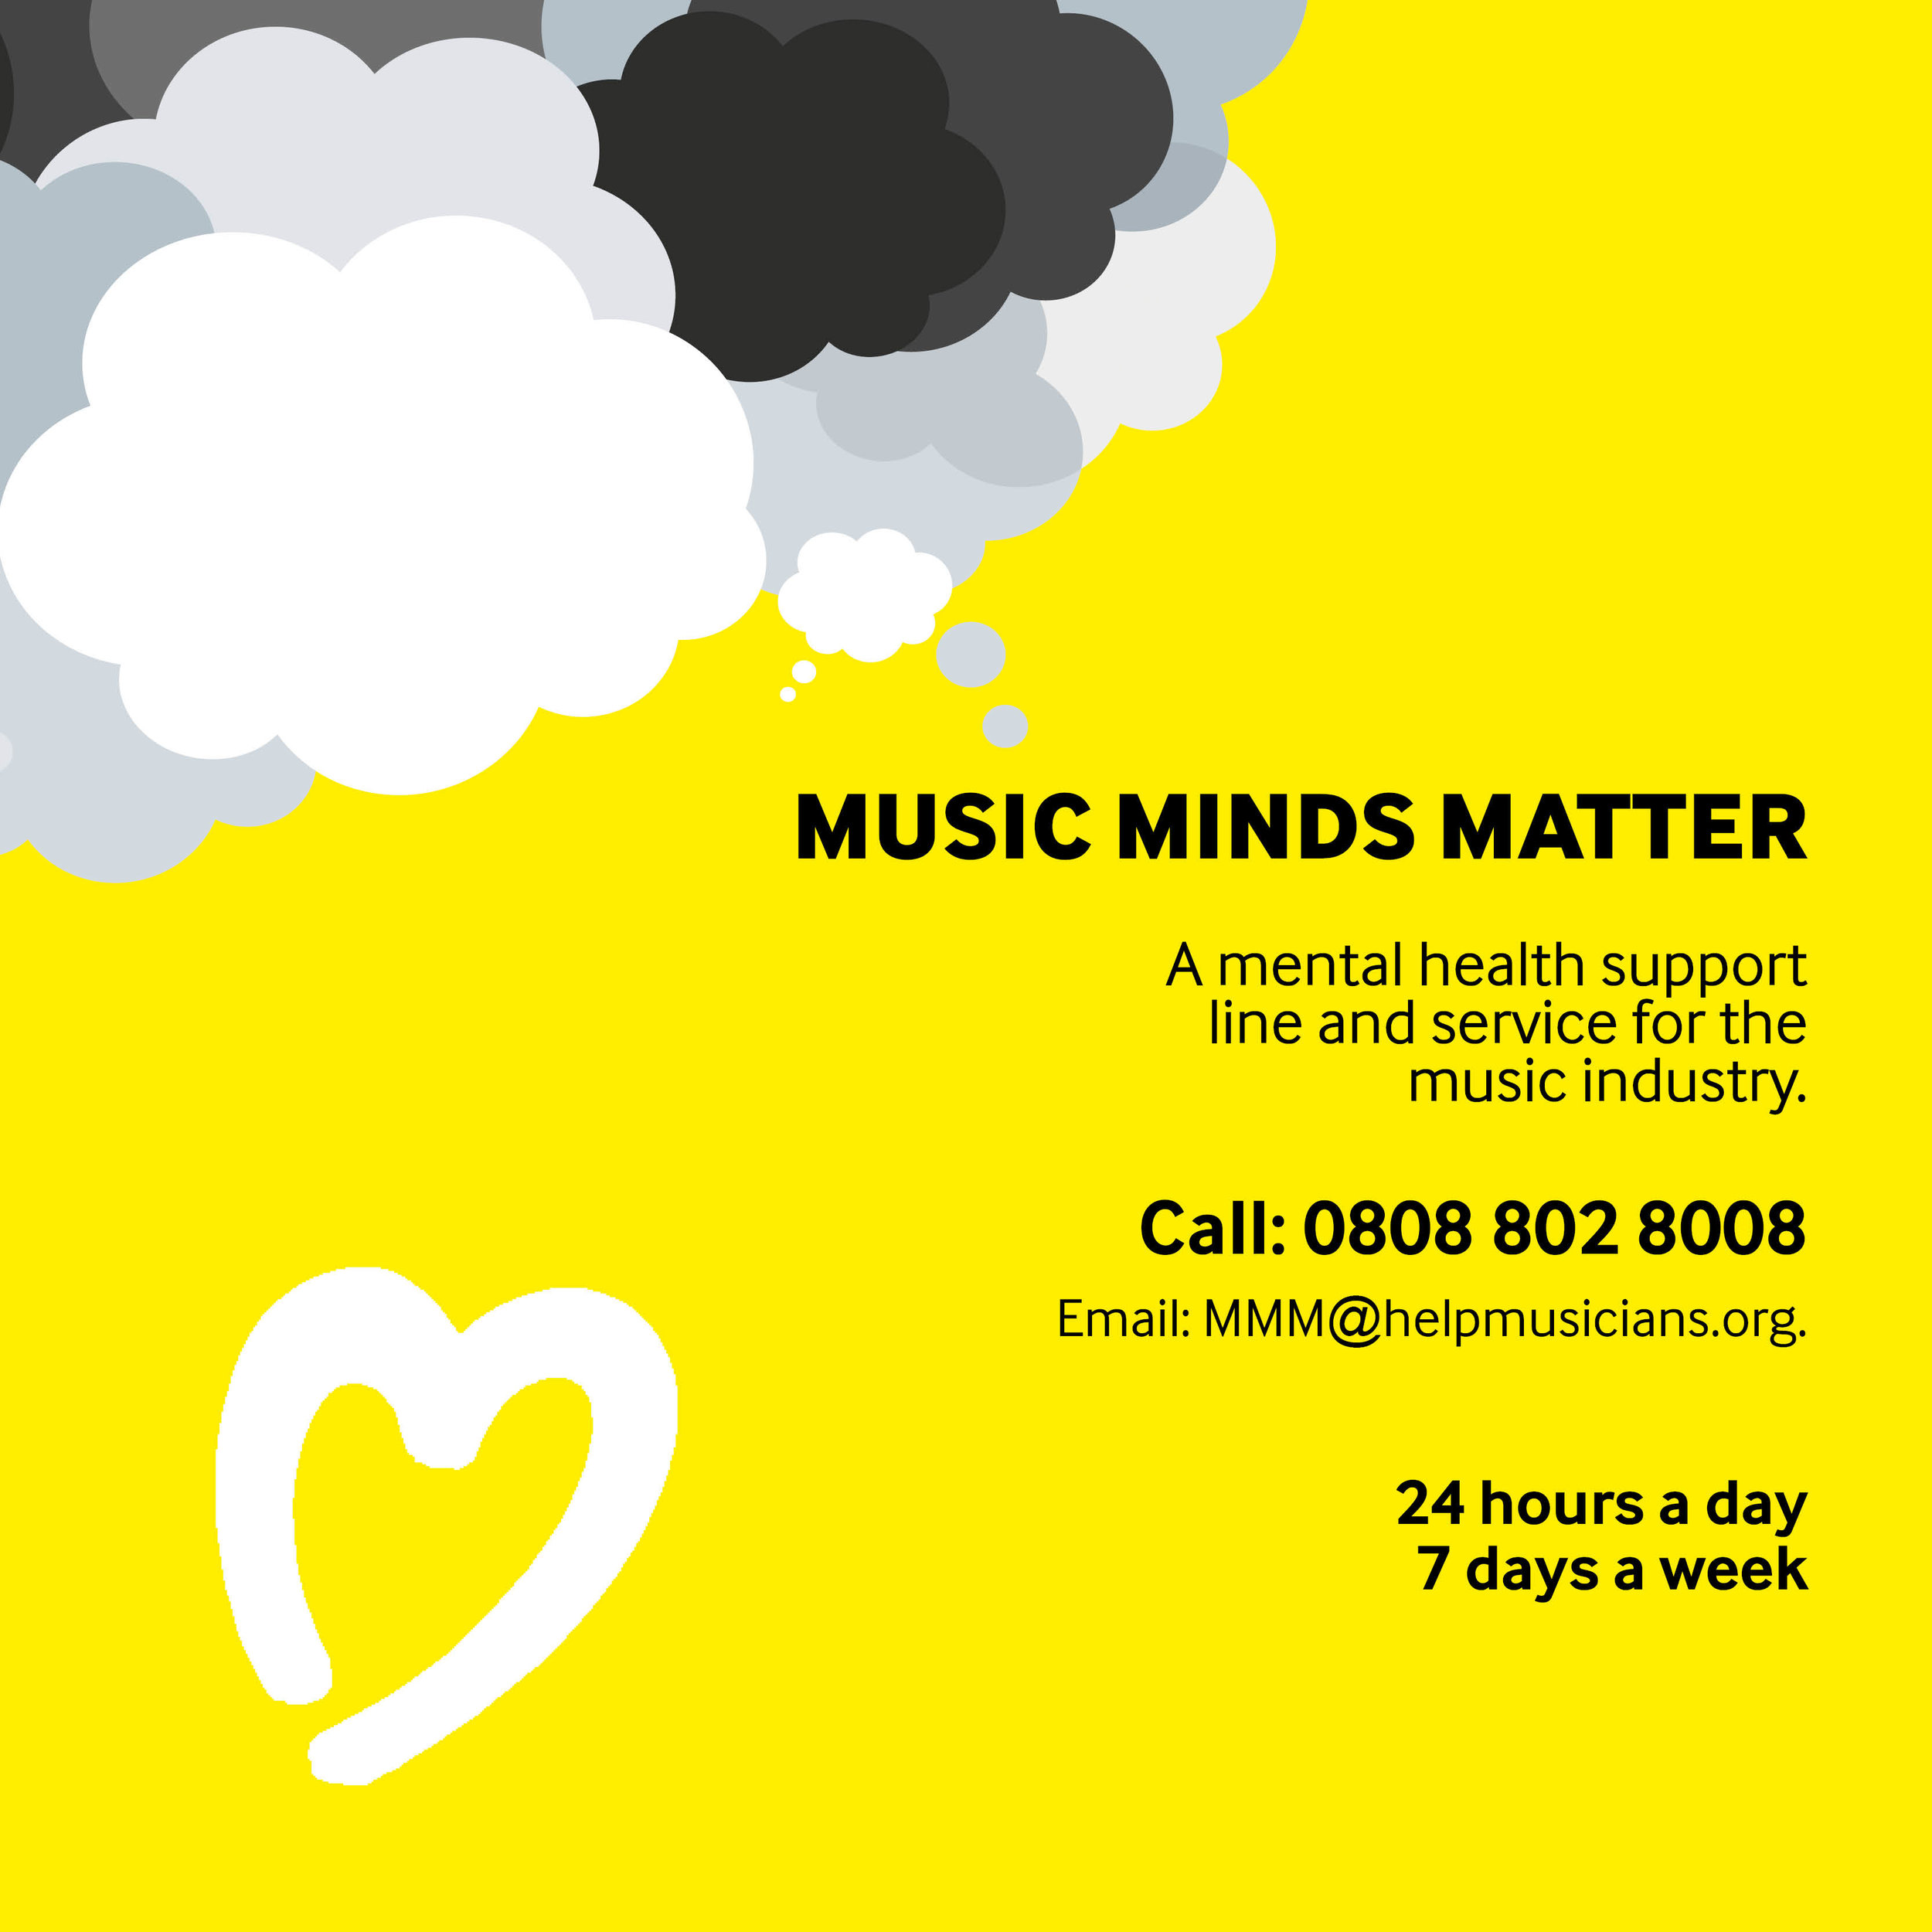 A mental health support line and service for the music industry. Donate to the charity by clicking on the image above.